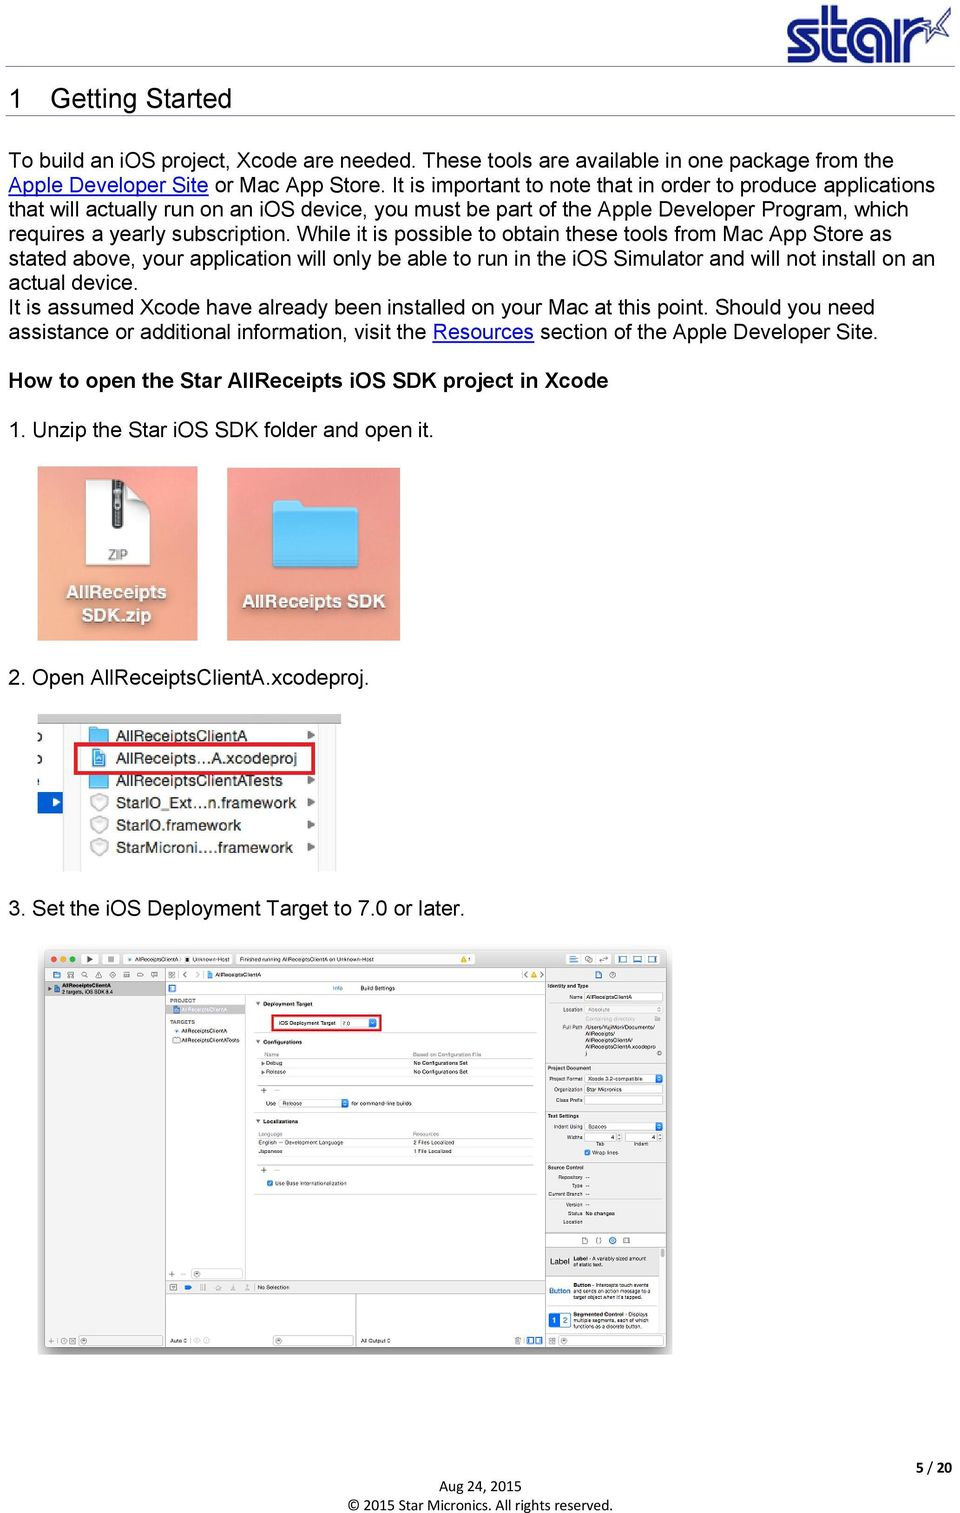 Star Micronics Cloud Services ios SDK User's Manual - PDF